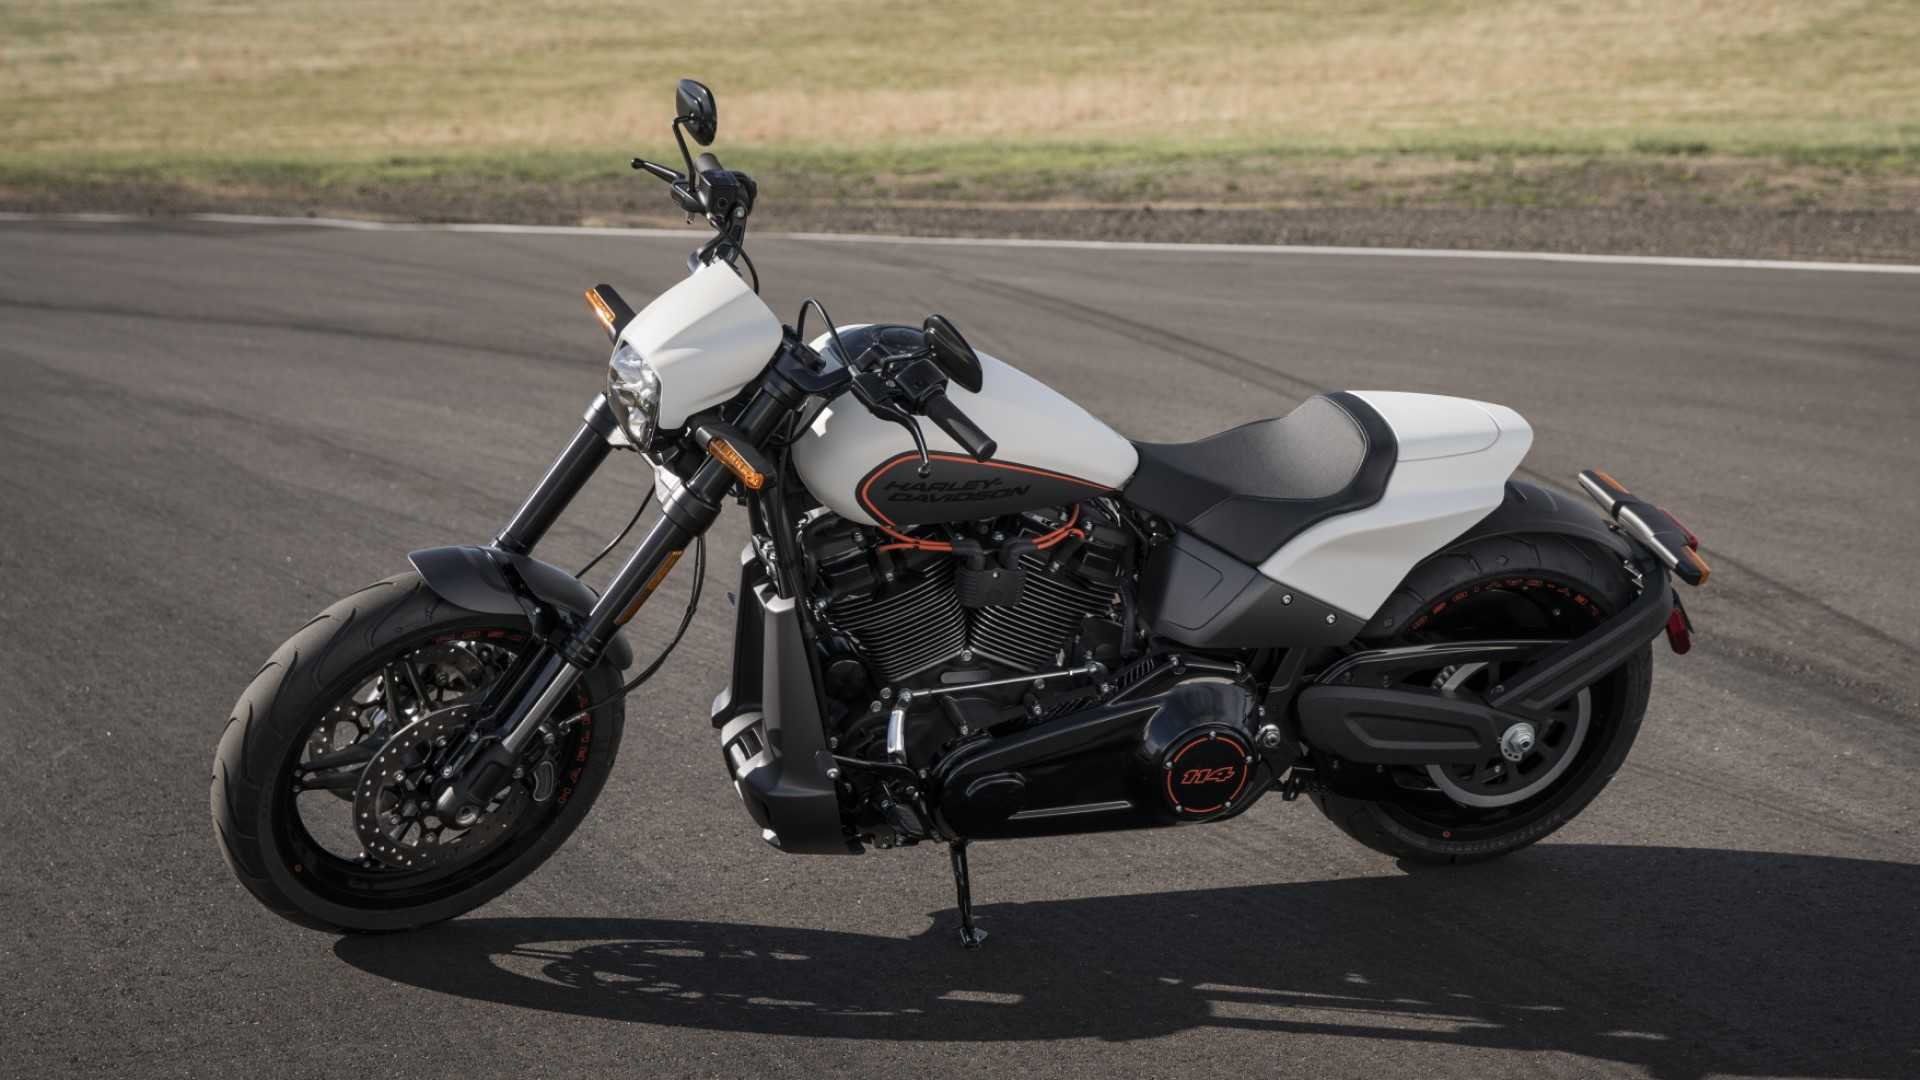 Harley Davidson Fxdr 114 Coming For 2019 New Performance: A Closer Look At Harley-Davidson's New FXDR 114 Power Cruiser